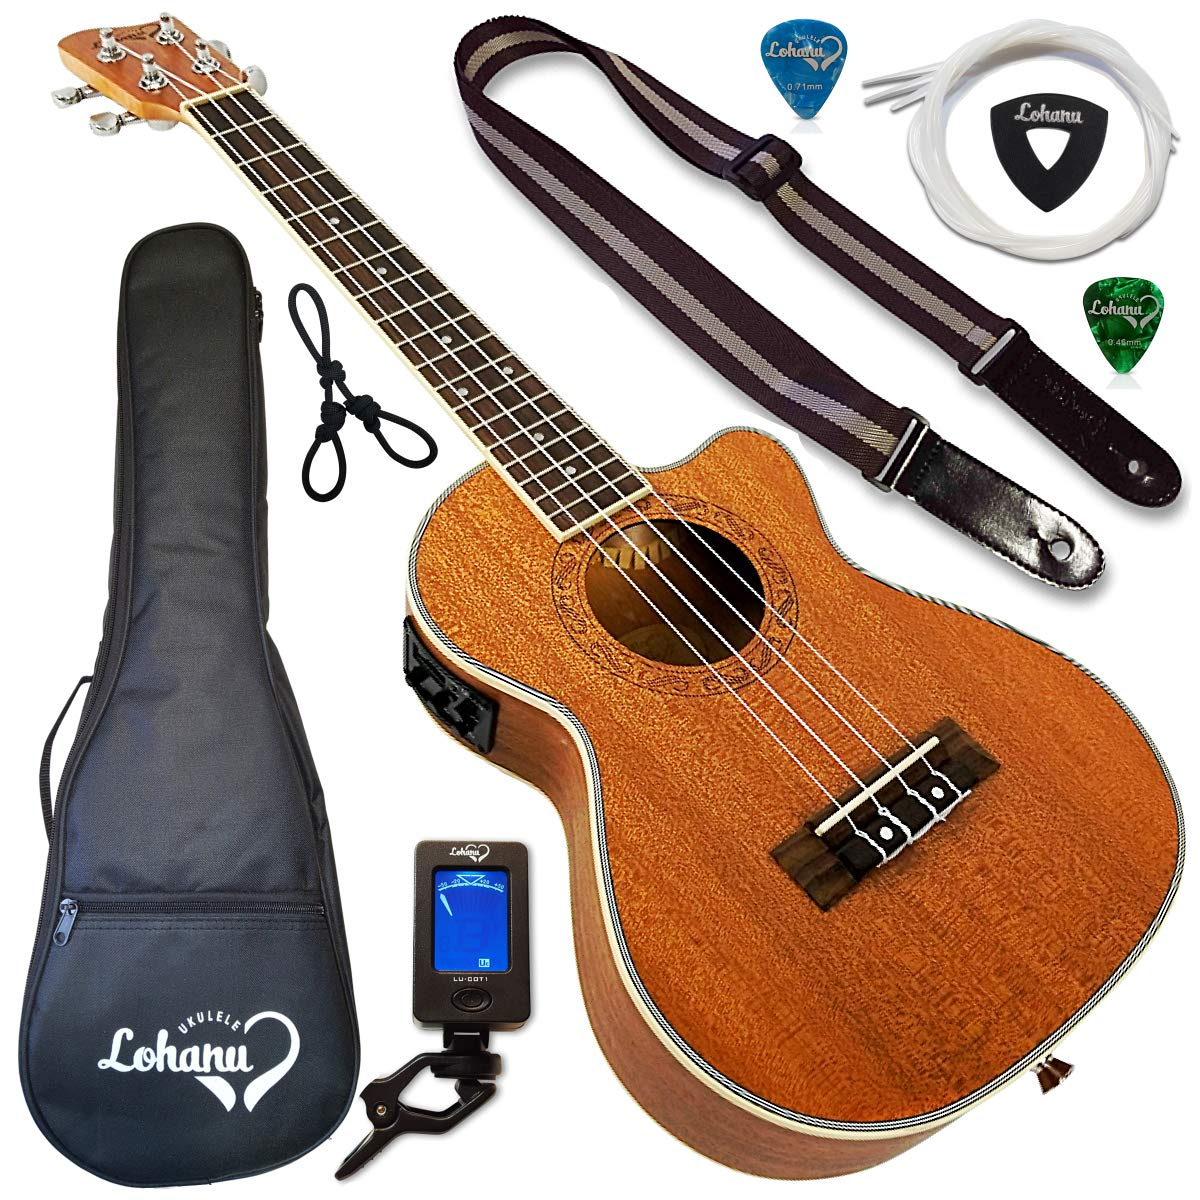 Ukulele from Lohanu Cutaway Electric With 3 Band EQ & Pick Up With All Accessories Included! (Tenor Size)